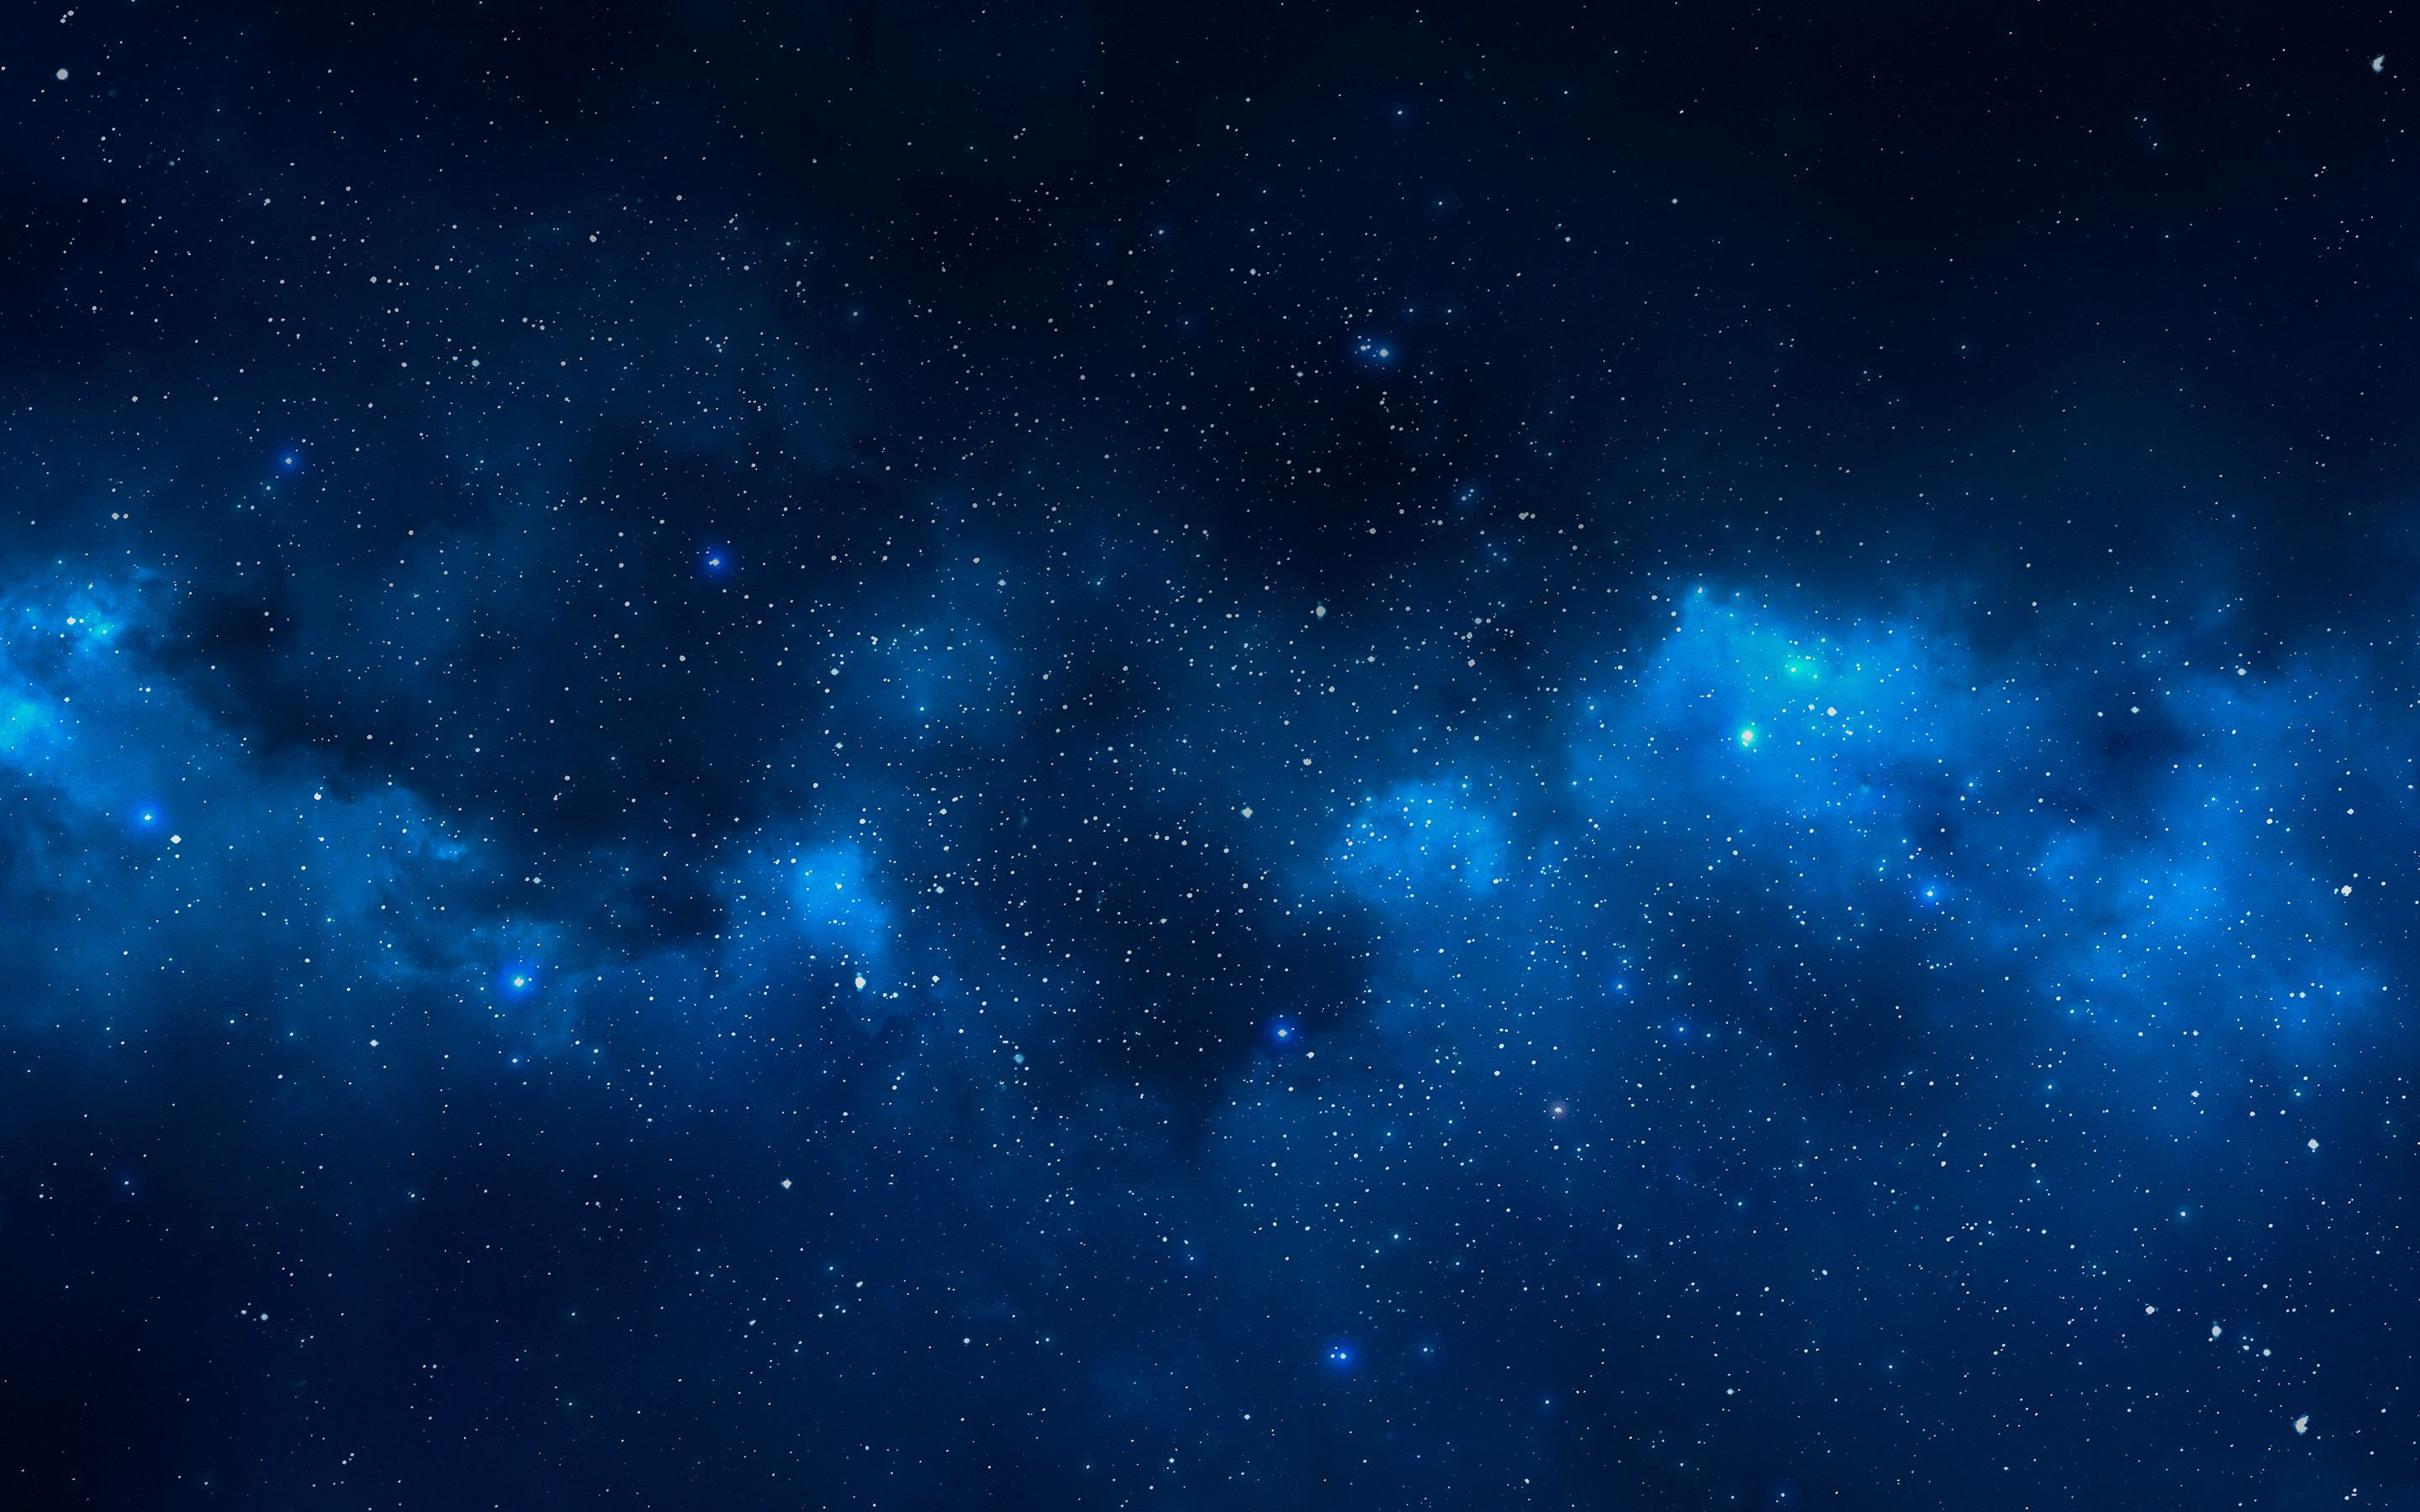 Res 2880x1800 Deep Space 4k Computer Wallpaper Hd Galaxy Wallpaper Blue Galaxy Wallpaper